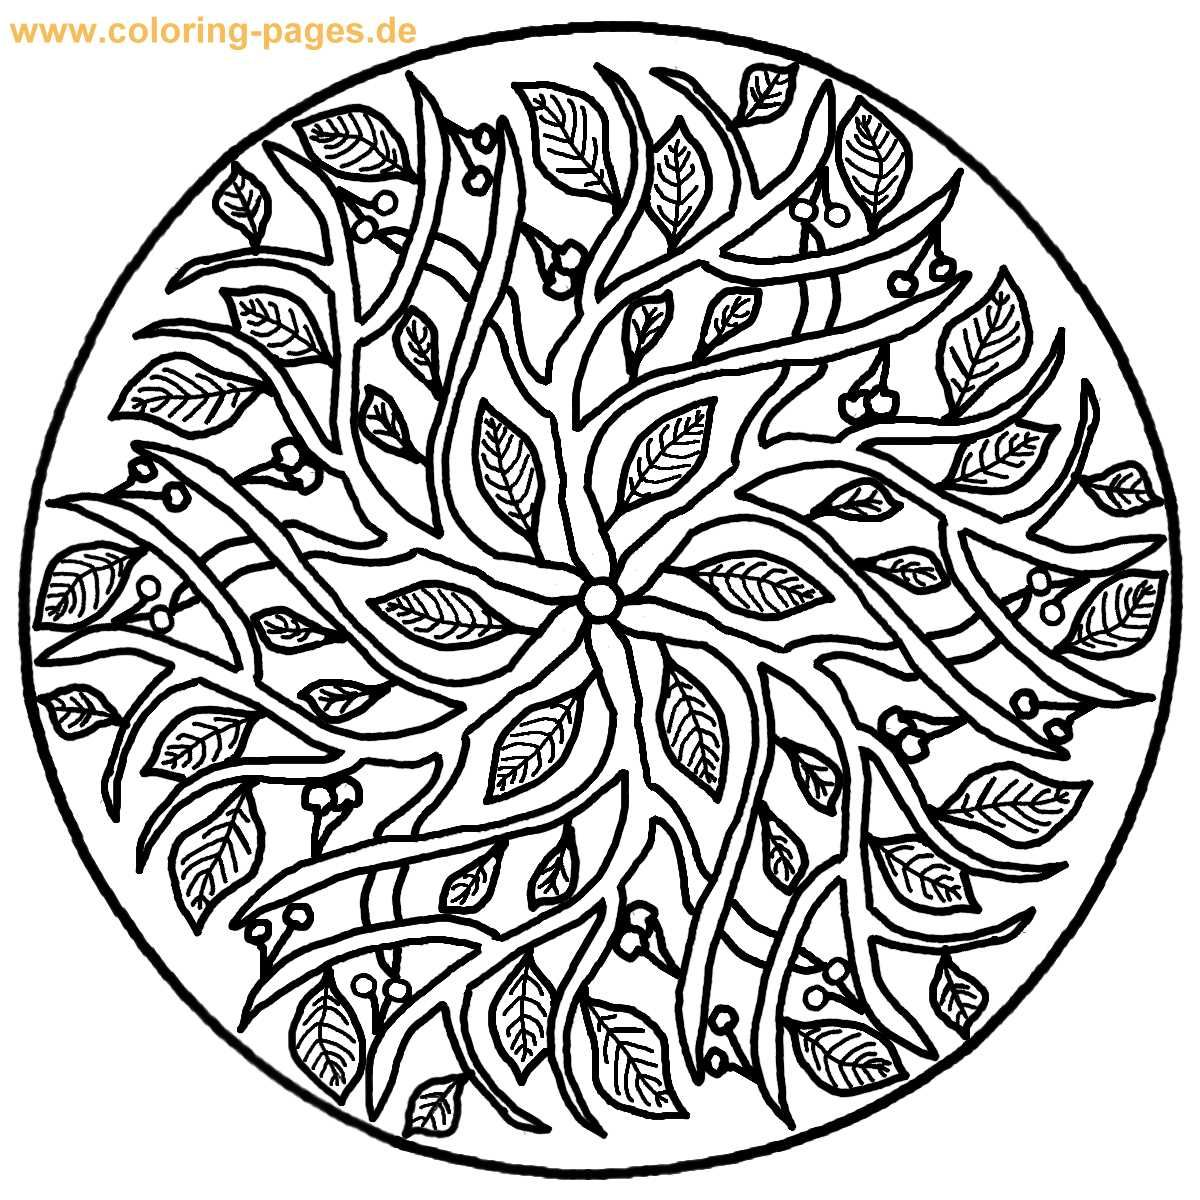 coloring pages mandala coloring pages free mandala coloring pages for kids pages i want. Black Bedroom Furniture Sets. Home Design Ideas